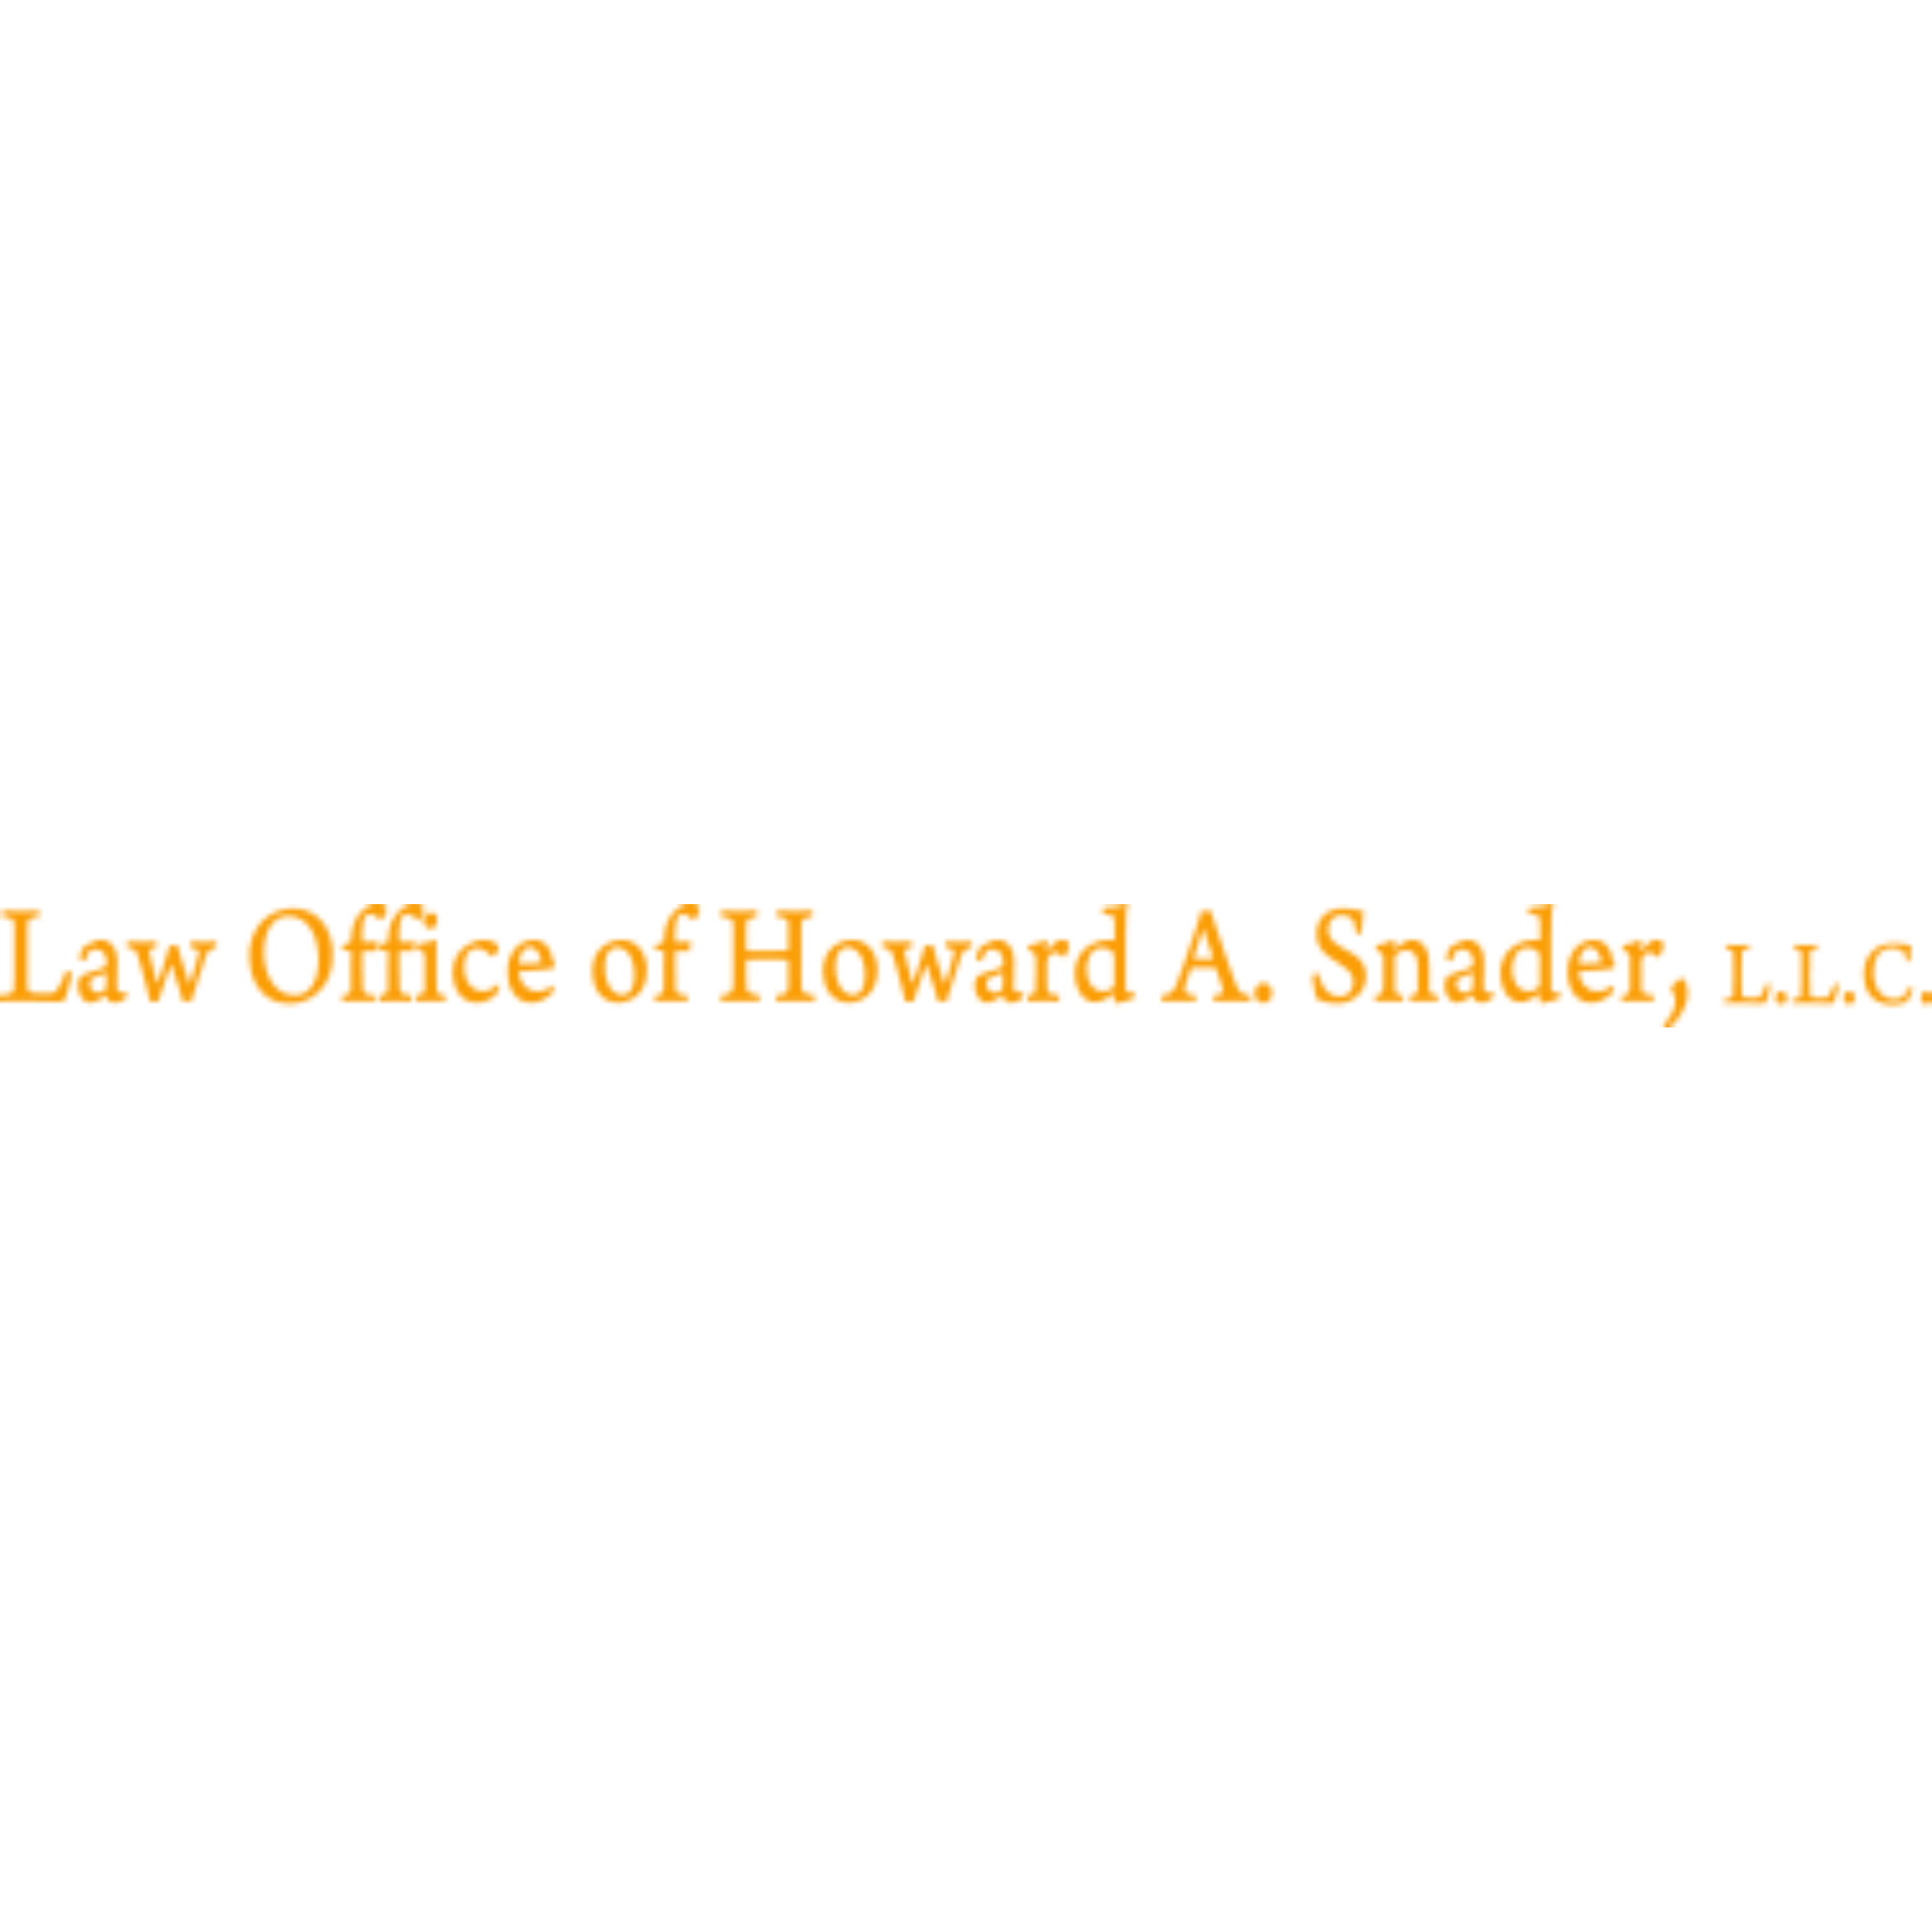 Law Office of Howard A. Snader